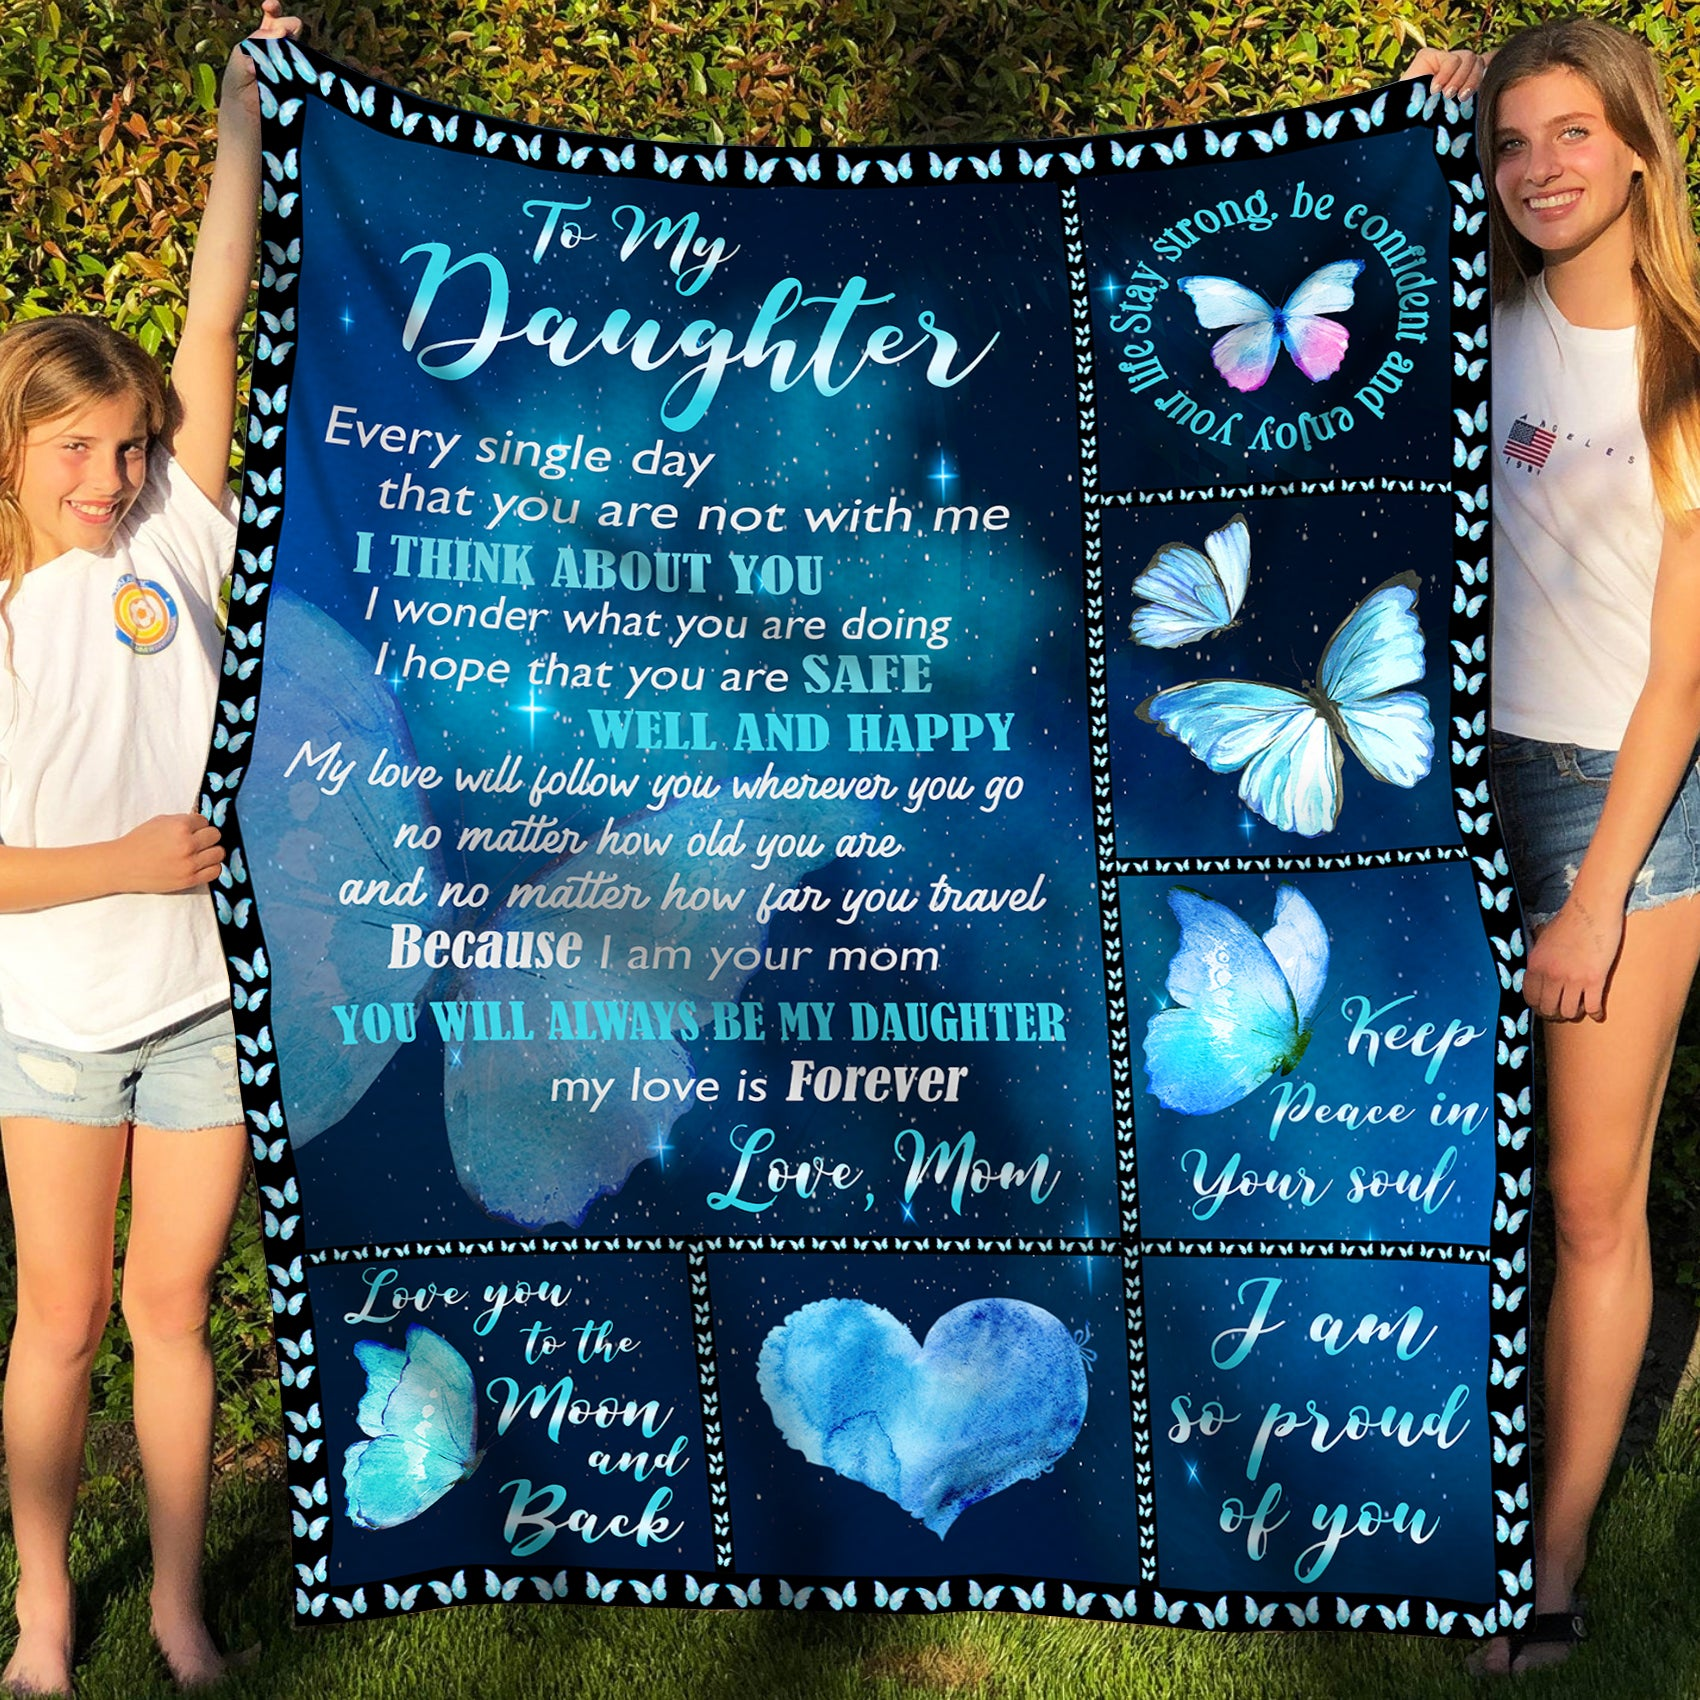 To My Daughter Fleece Blanket - I Think About You - Gift For Daughter From Mom, Birthday gifts, Blanket With Quotes - 4599